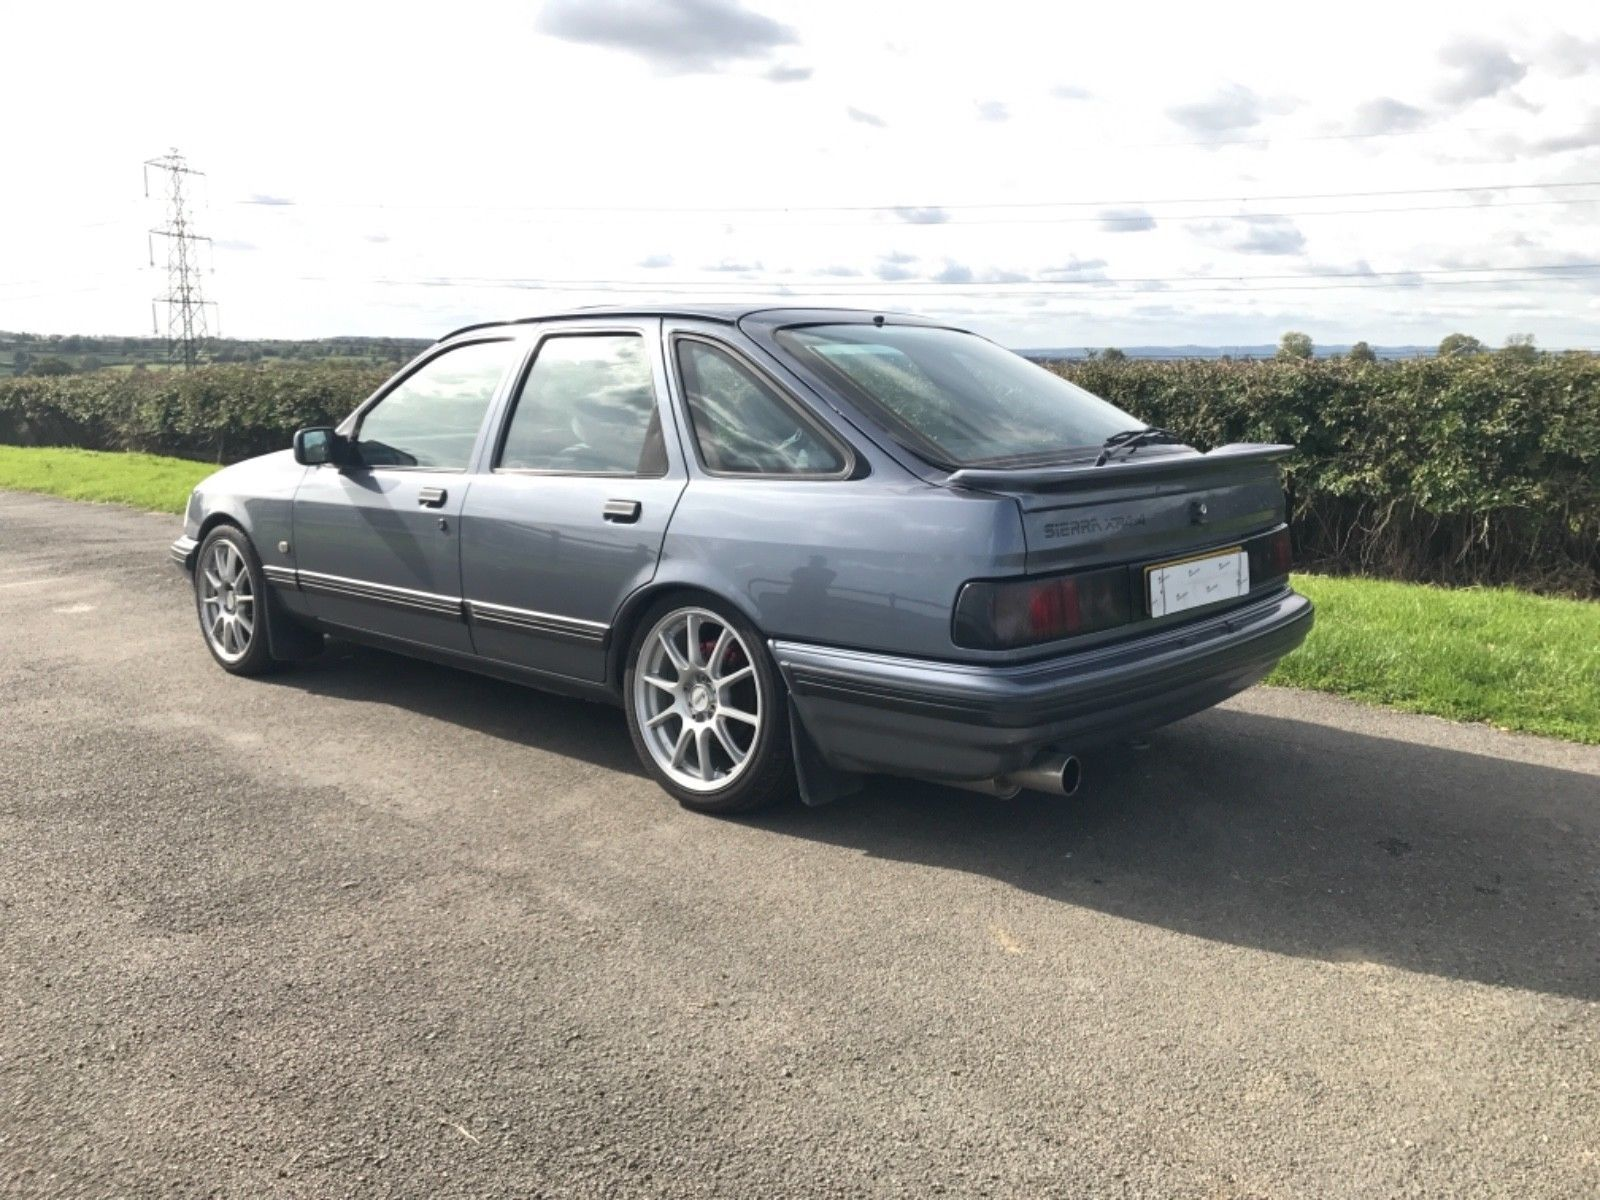 This Ford Sierra Xr4i 4x4 V6 2 8 In Grey E Reg 77k Cosworth One Previous Owner Vgc Is For Sale Ford Sierra Ford Classic Cars Ford